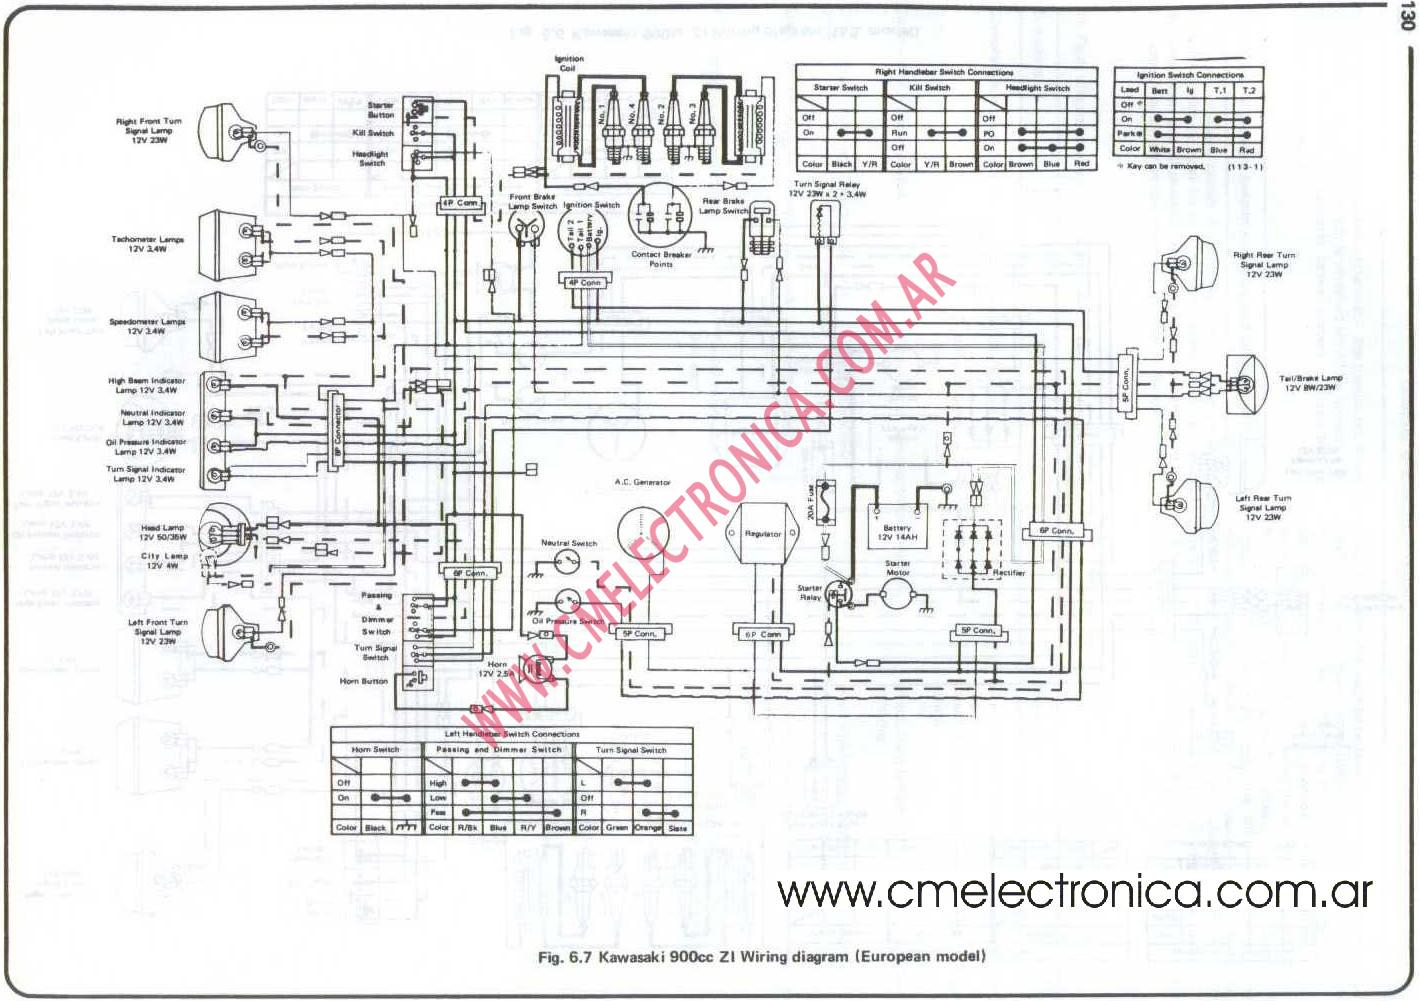 Wiring Diagram Of Kawasaki Aura 610 Schematic Yamaha Rhino 300 Atv